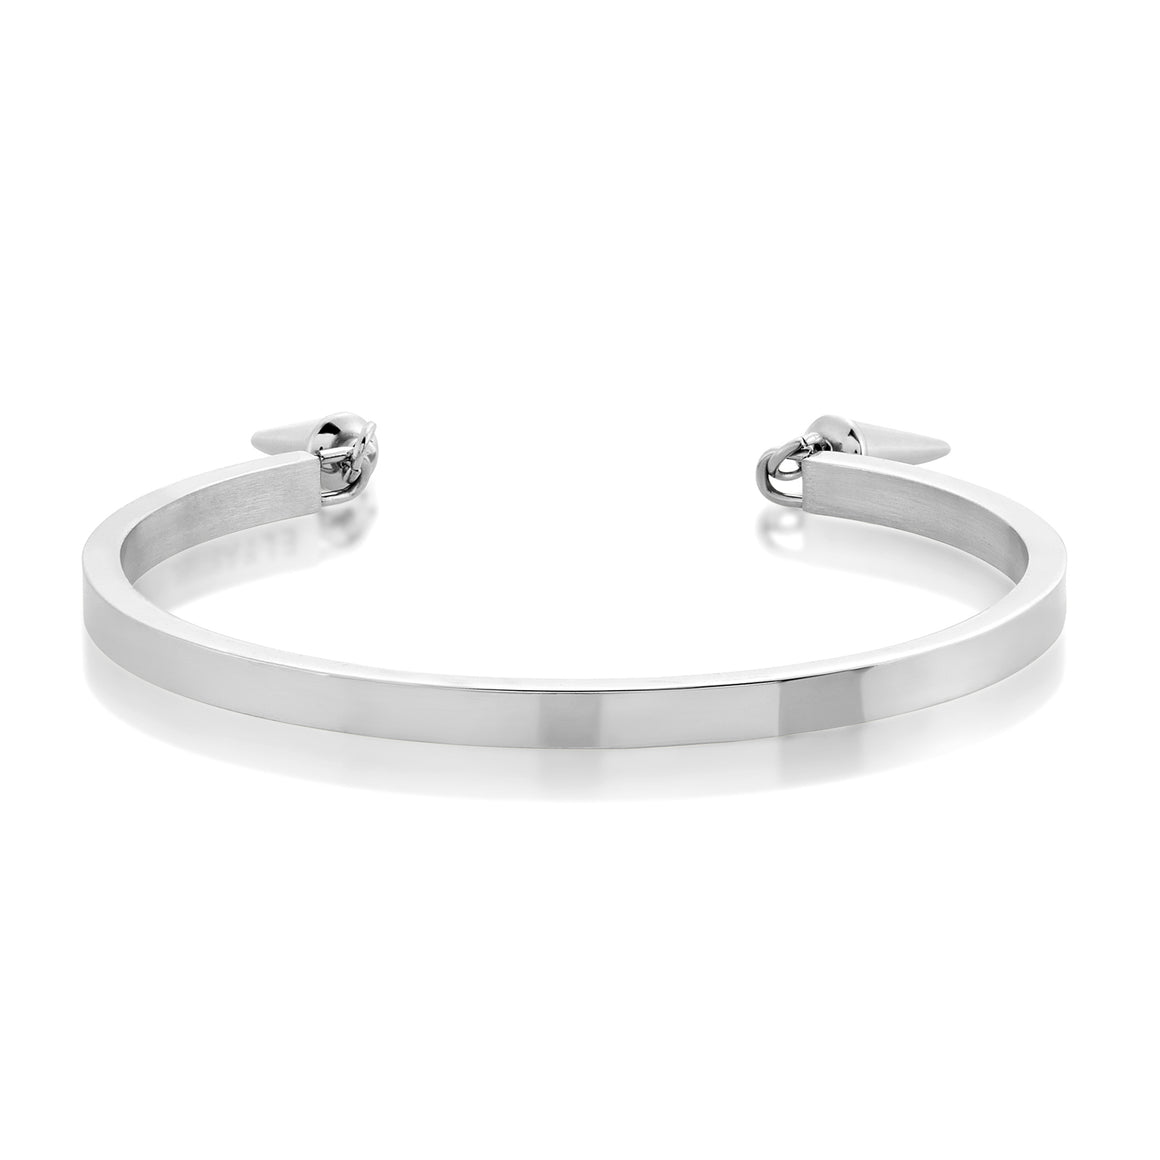 ELYA Women's High Polish Cone Charms Stainless Steel Cuff Bracelet